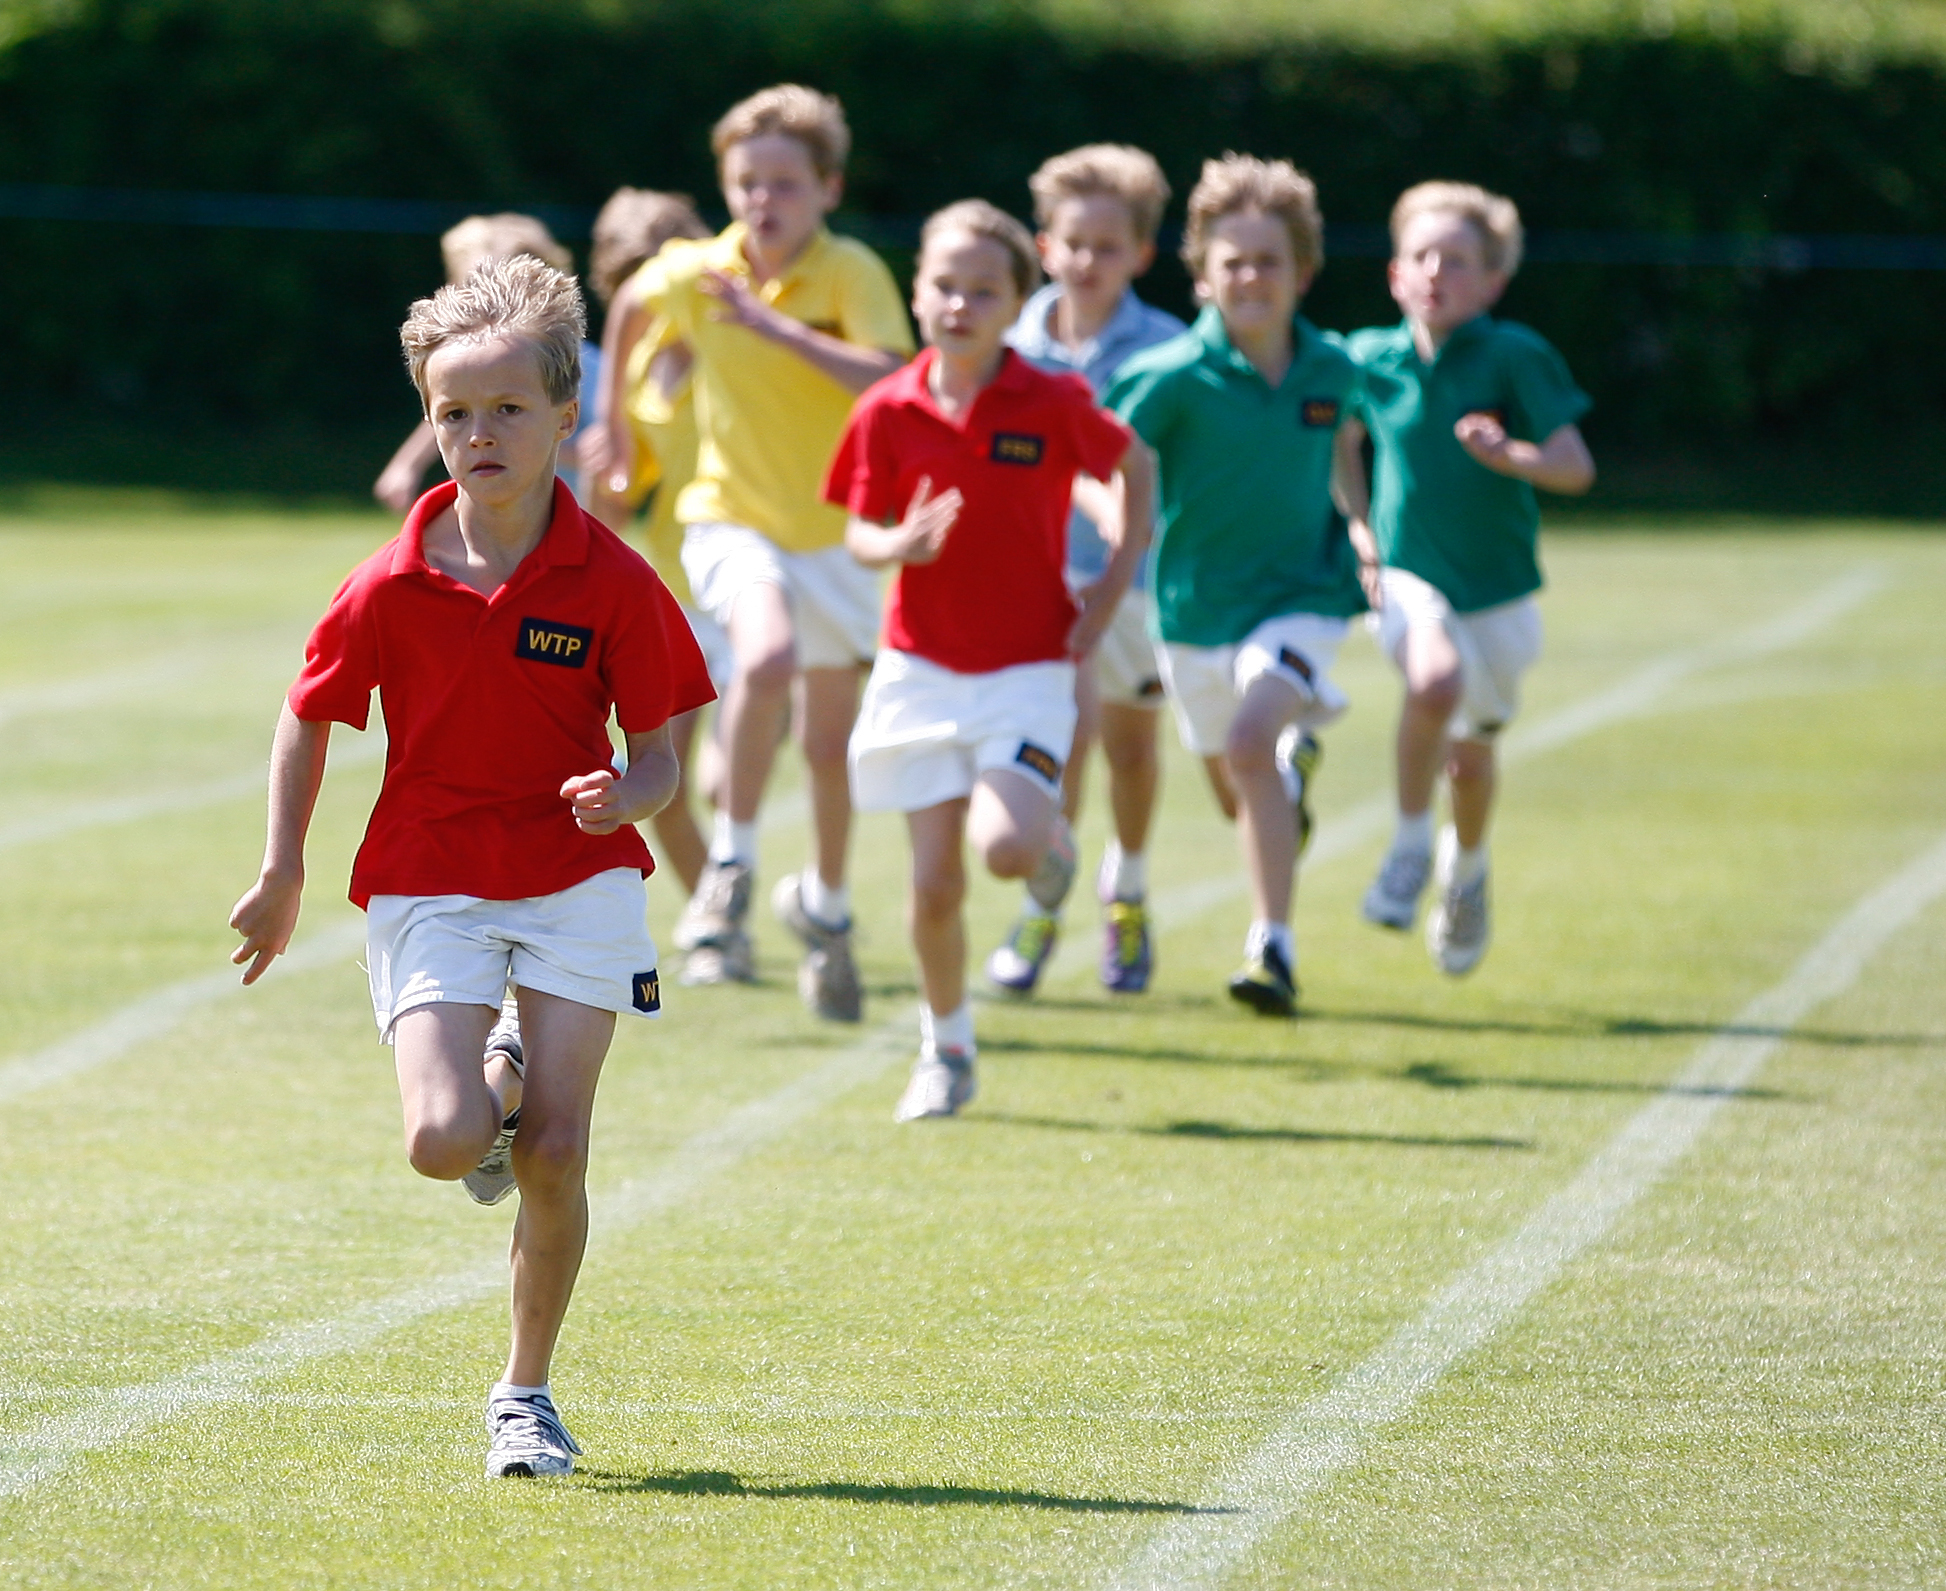 school sport day Friday 28th june in berkshire, england 300 pupils, 4 houses, 100 track events, 40 field events and tug of war as the finale prizes given out by a parent.